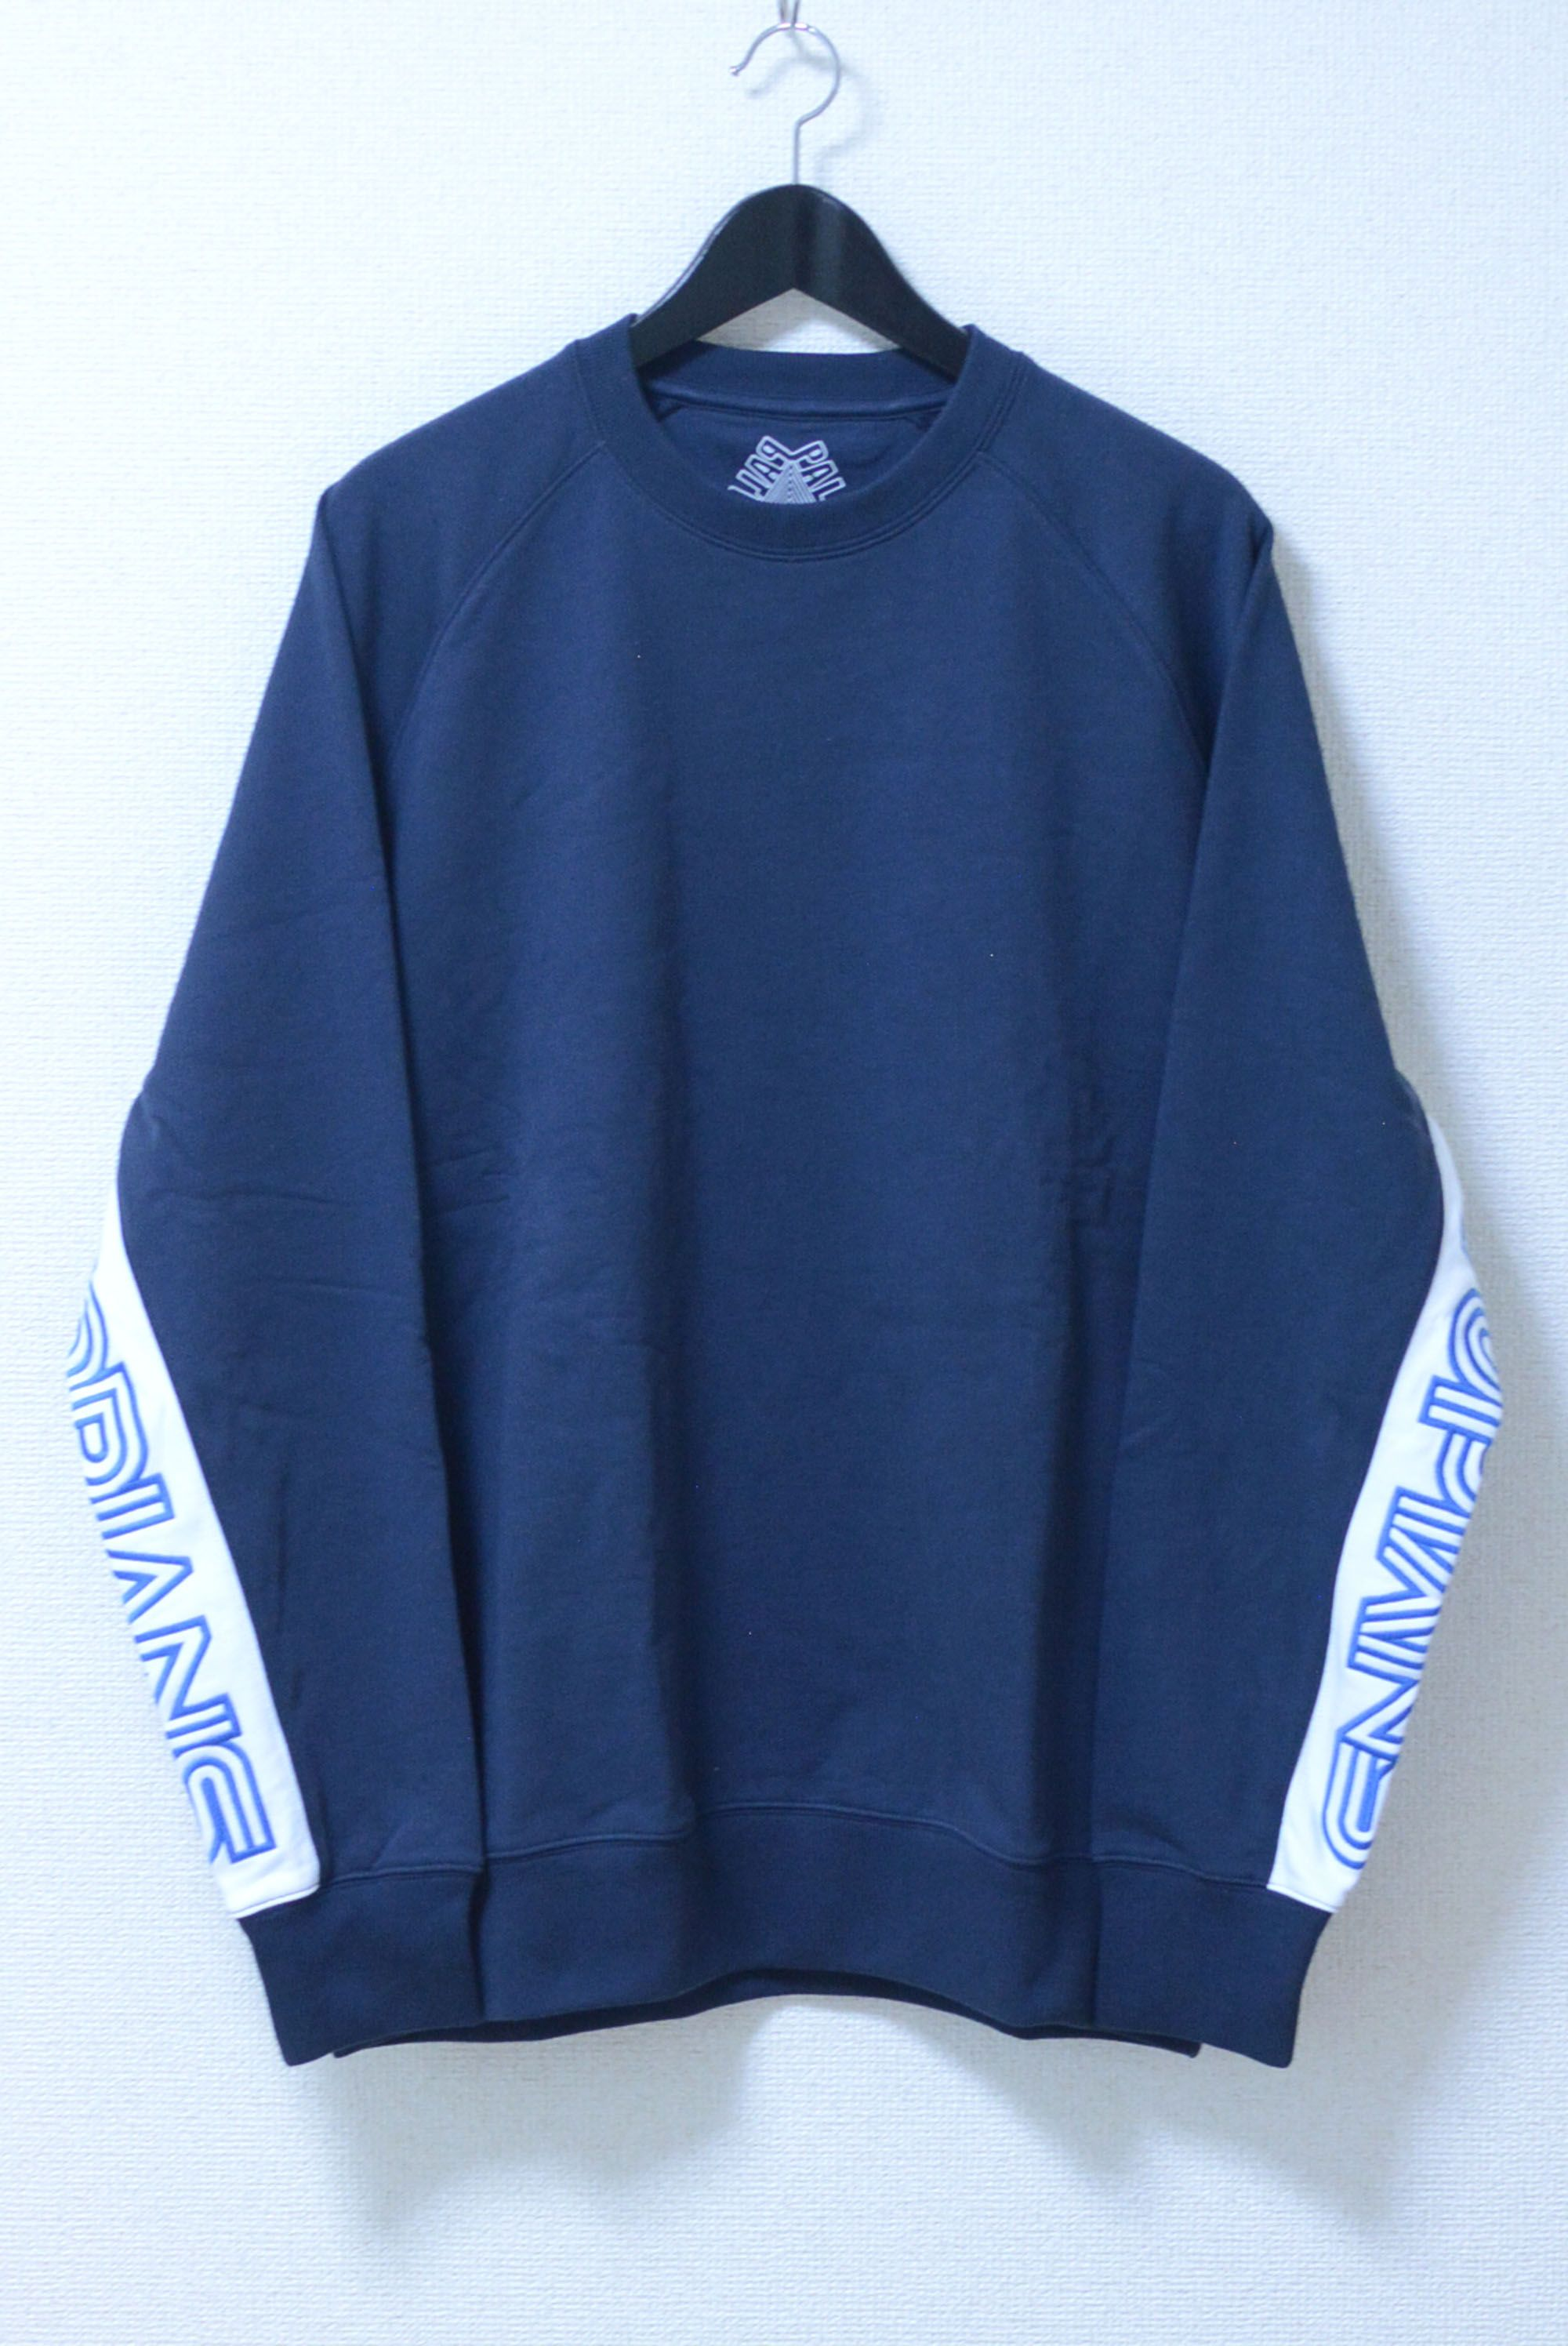 PALACE SKATEBOARDS UTOPIANS SPORT CREW NAVY22,000円(内税)